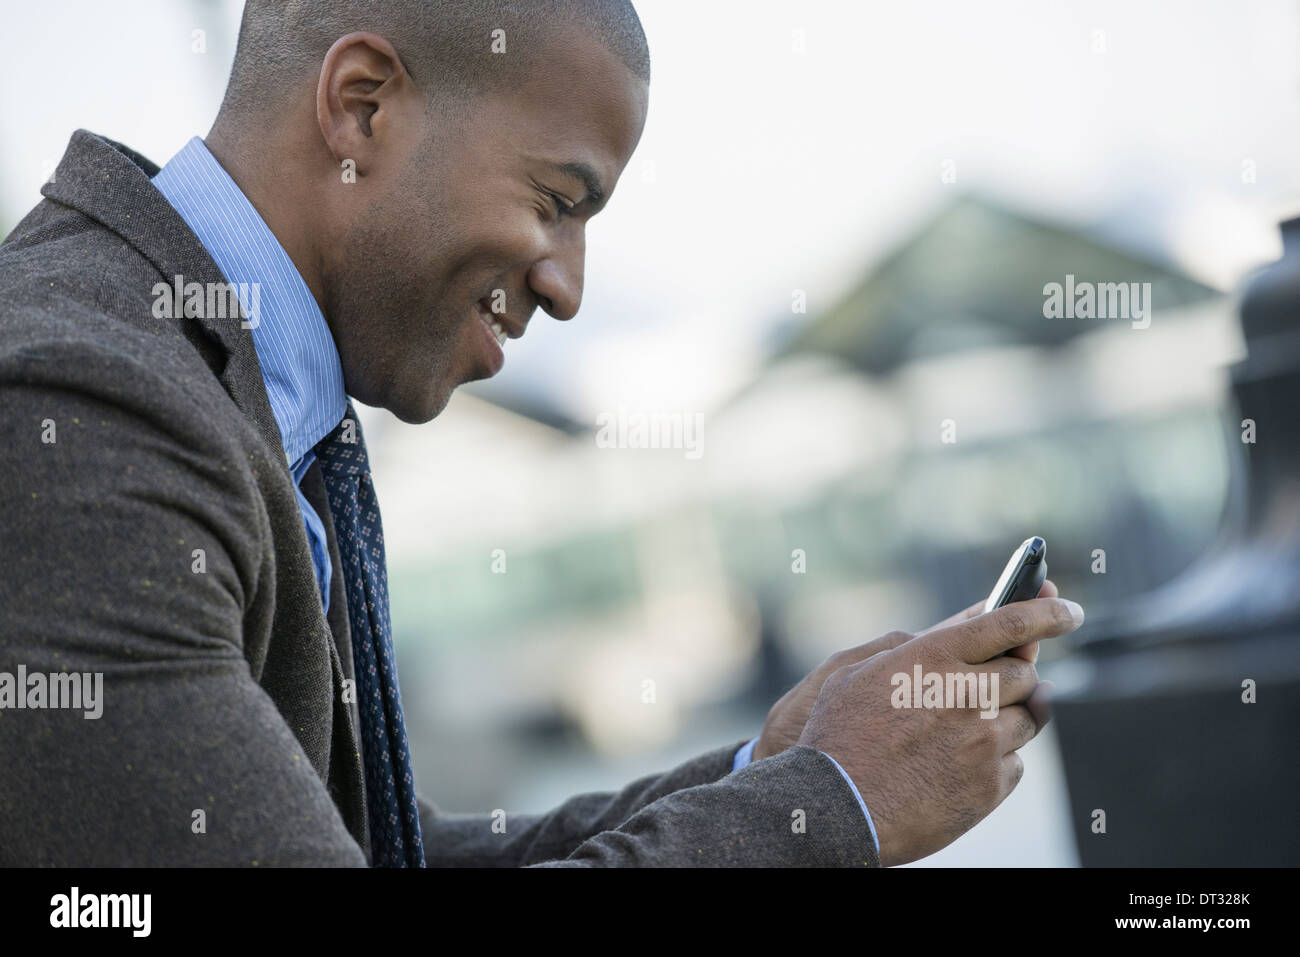 A man seated on a bench checking his smart phone - Stock Image